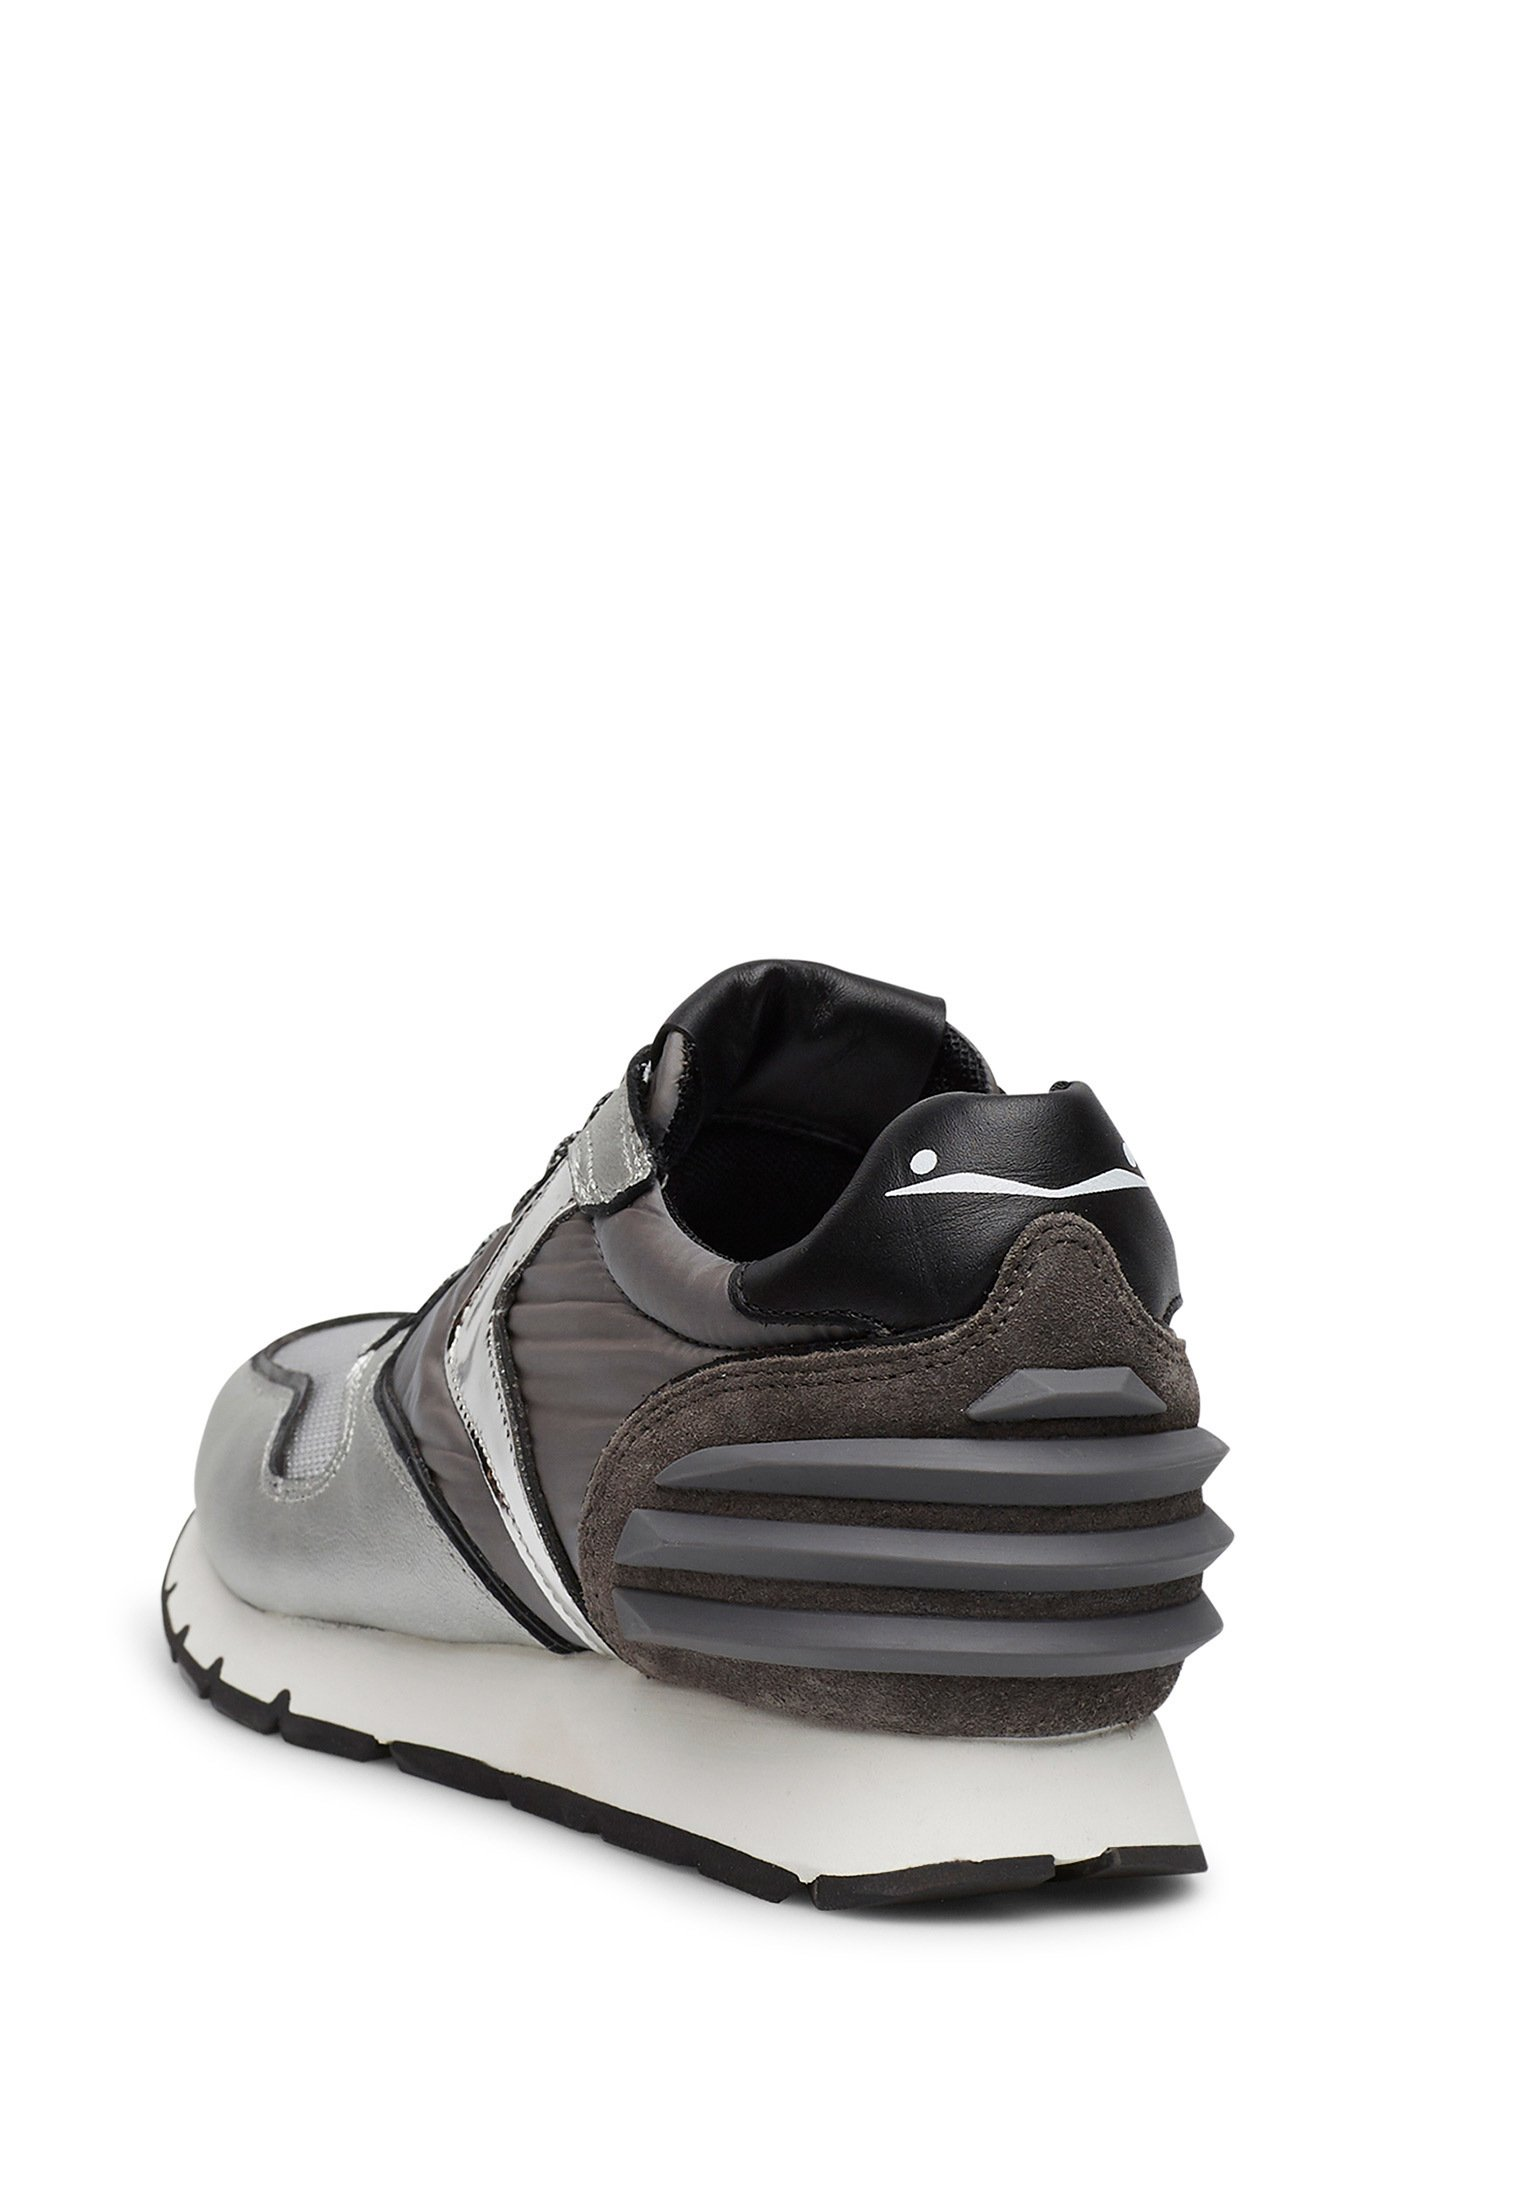 Basse PowerSneakers Voile Julia Blanche Silver qSUzVpM